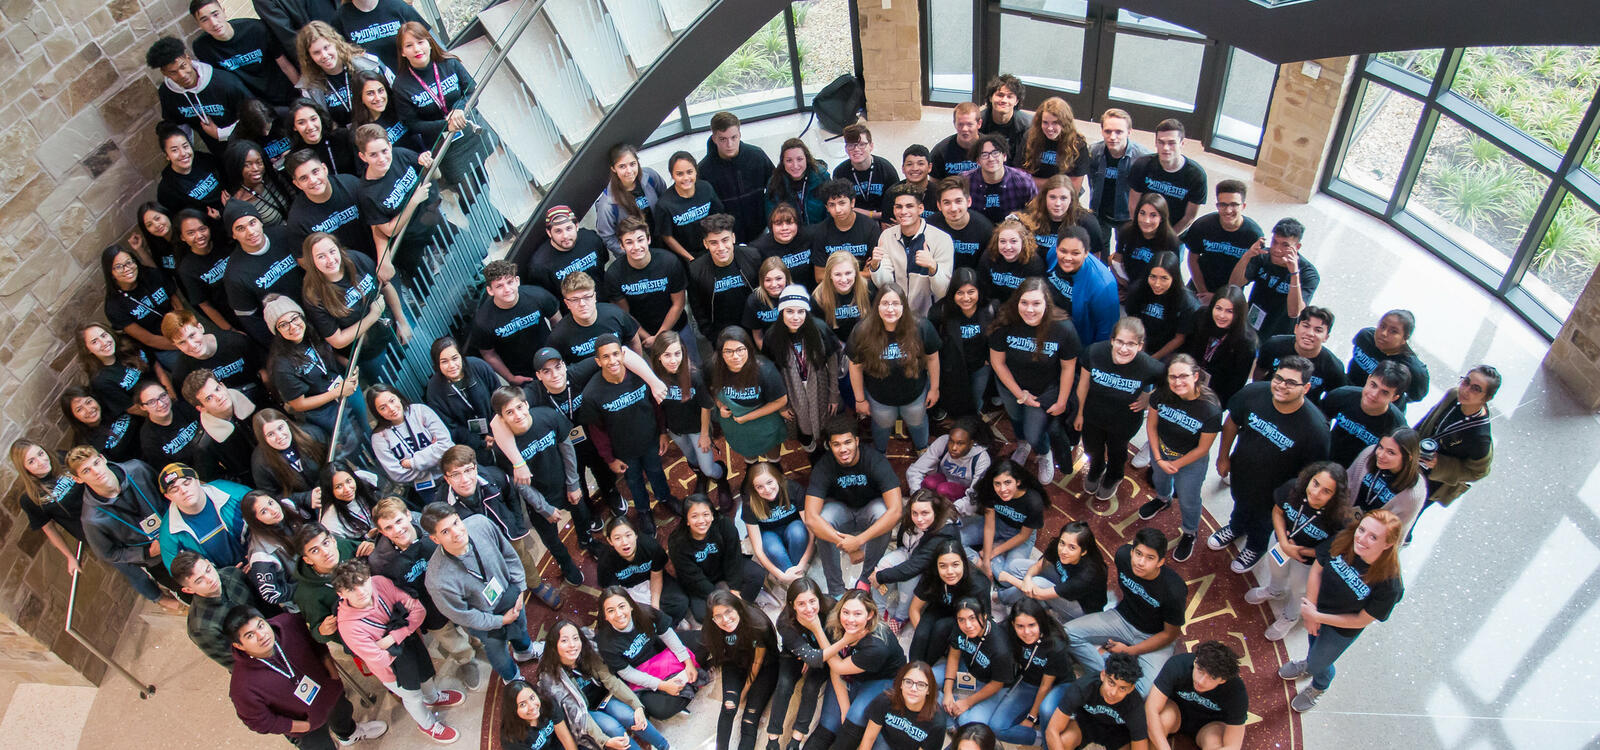 """A group of students, all matching in black shirts that say """"Southwestern Adventist University"""" in blue letters, look up as the stand on stairs and on the floor, smiling and looking up"""